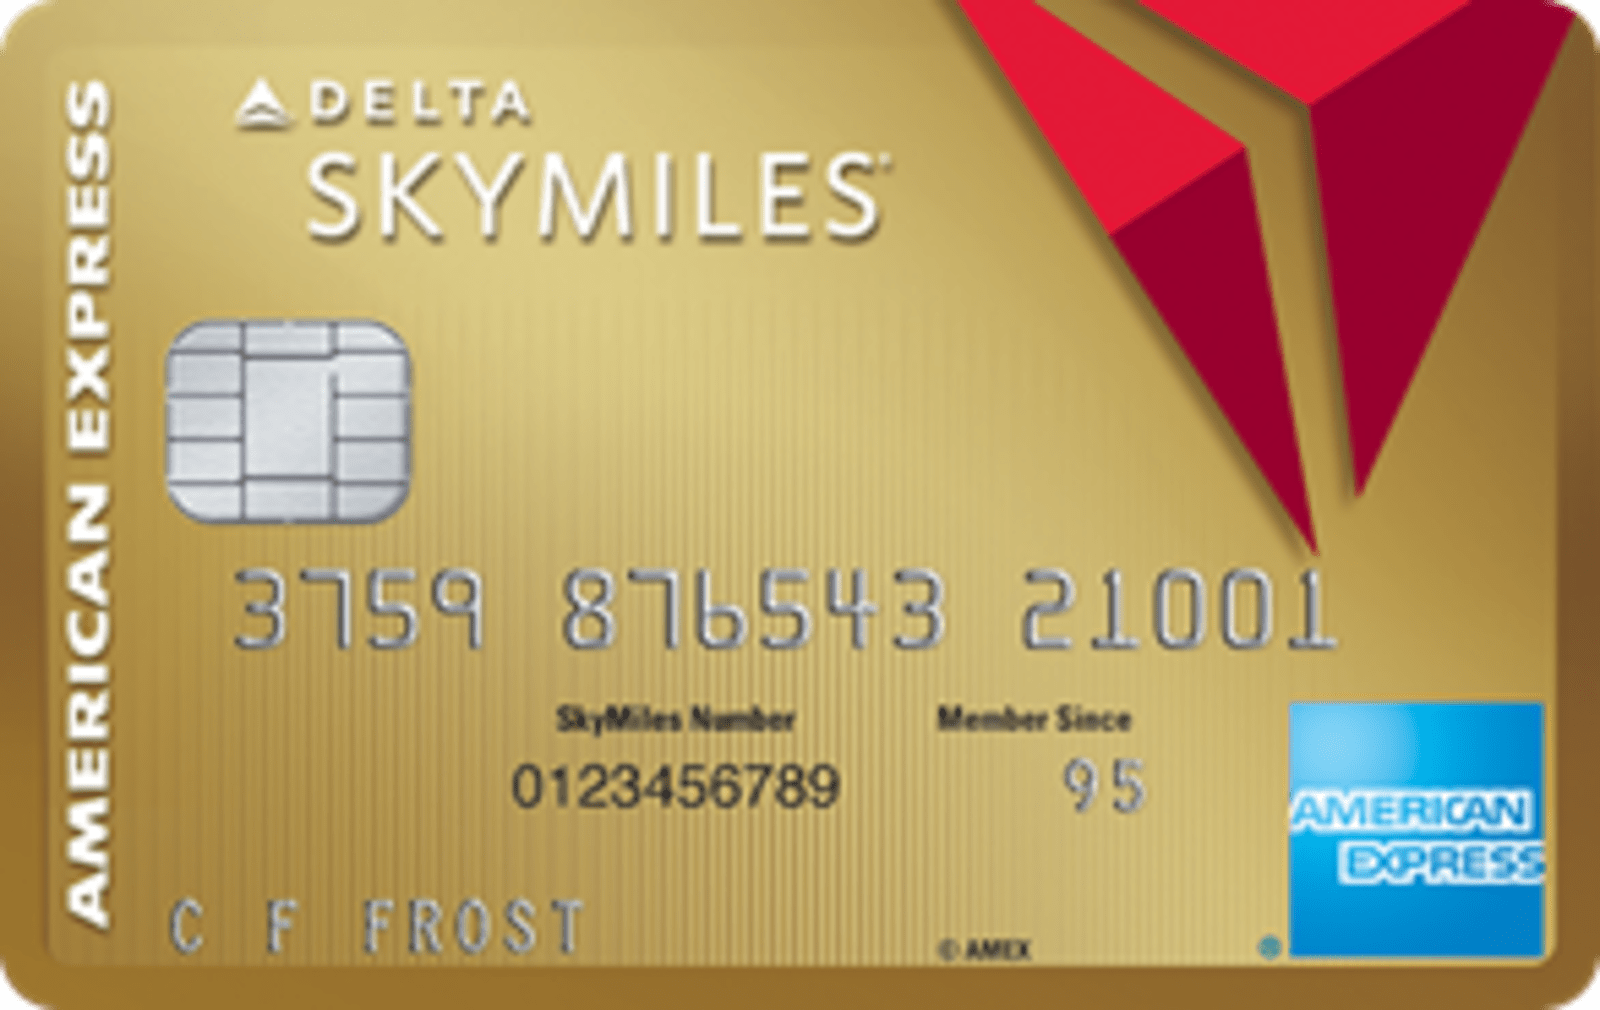 Best Credit Cards for Airline Miles - September 2019 Picks